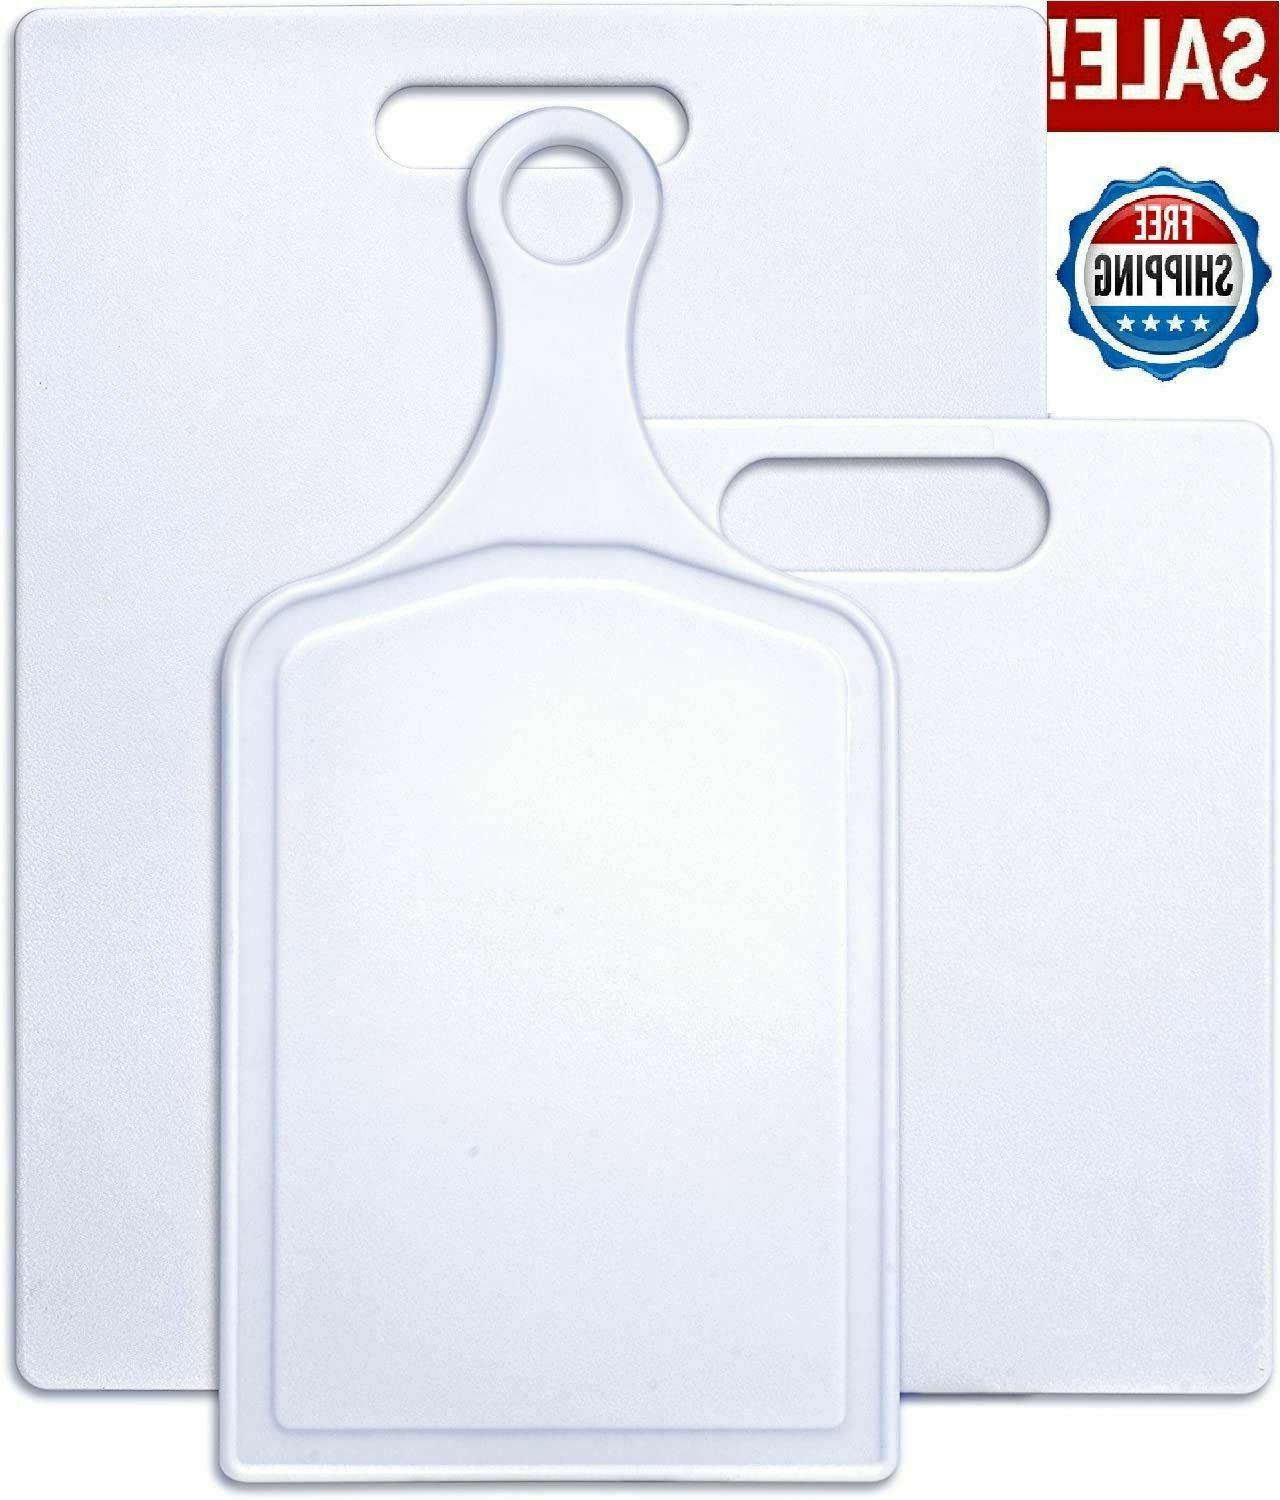 3 Pcs Kitchen Cutting Board Plastic Cooking Set Small Large